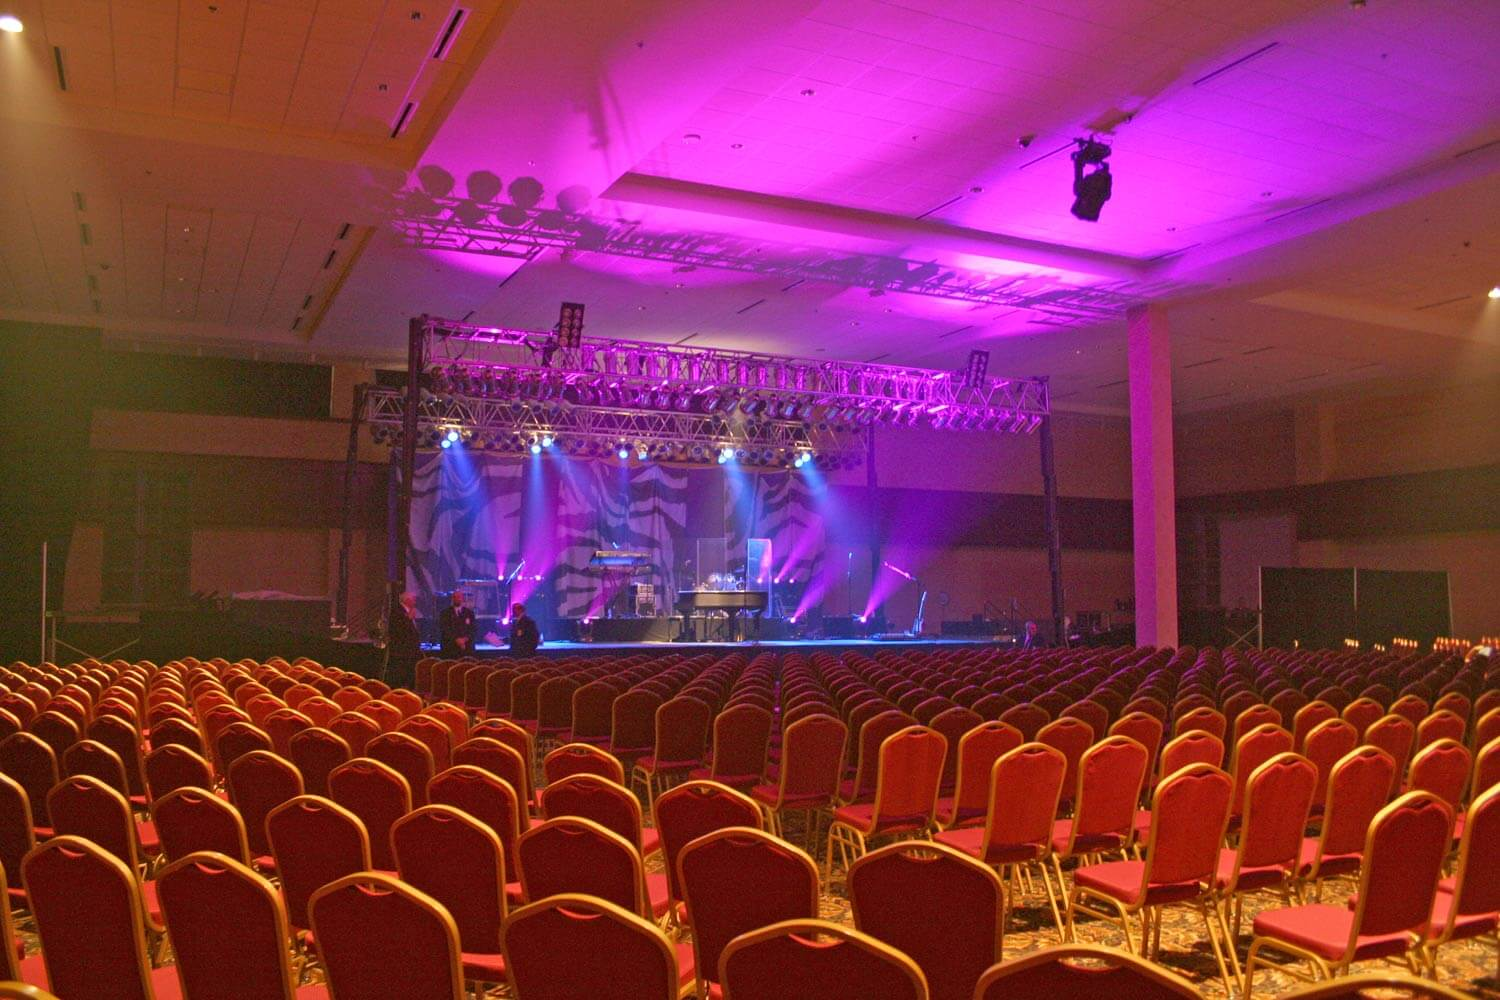 Concert Configuration at the Grand Casino Image